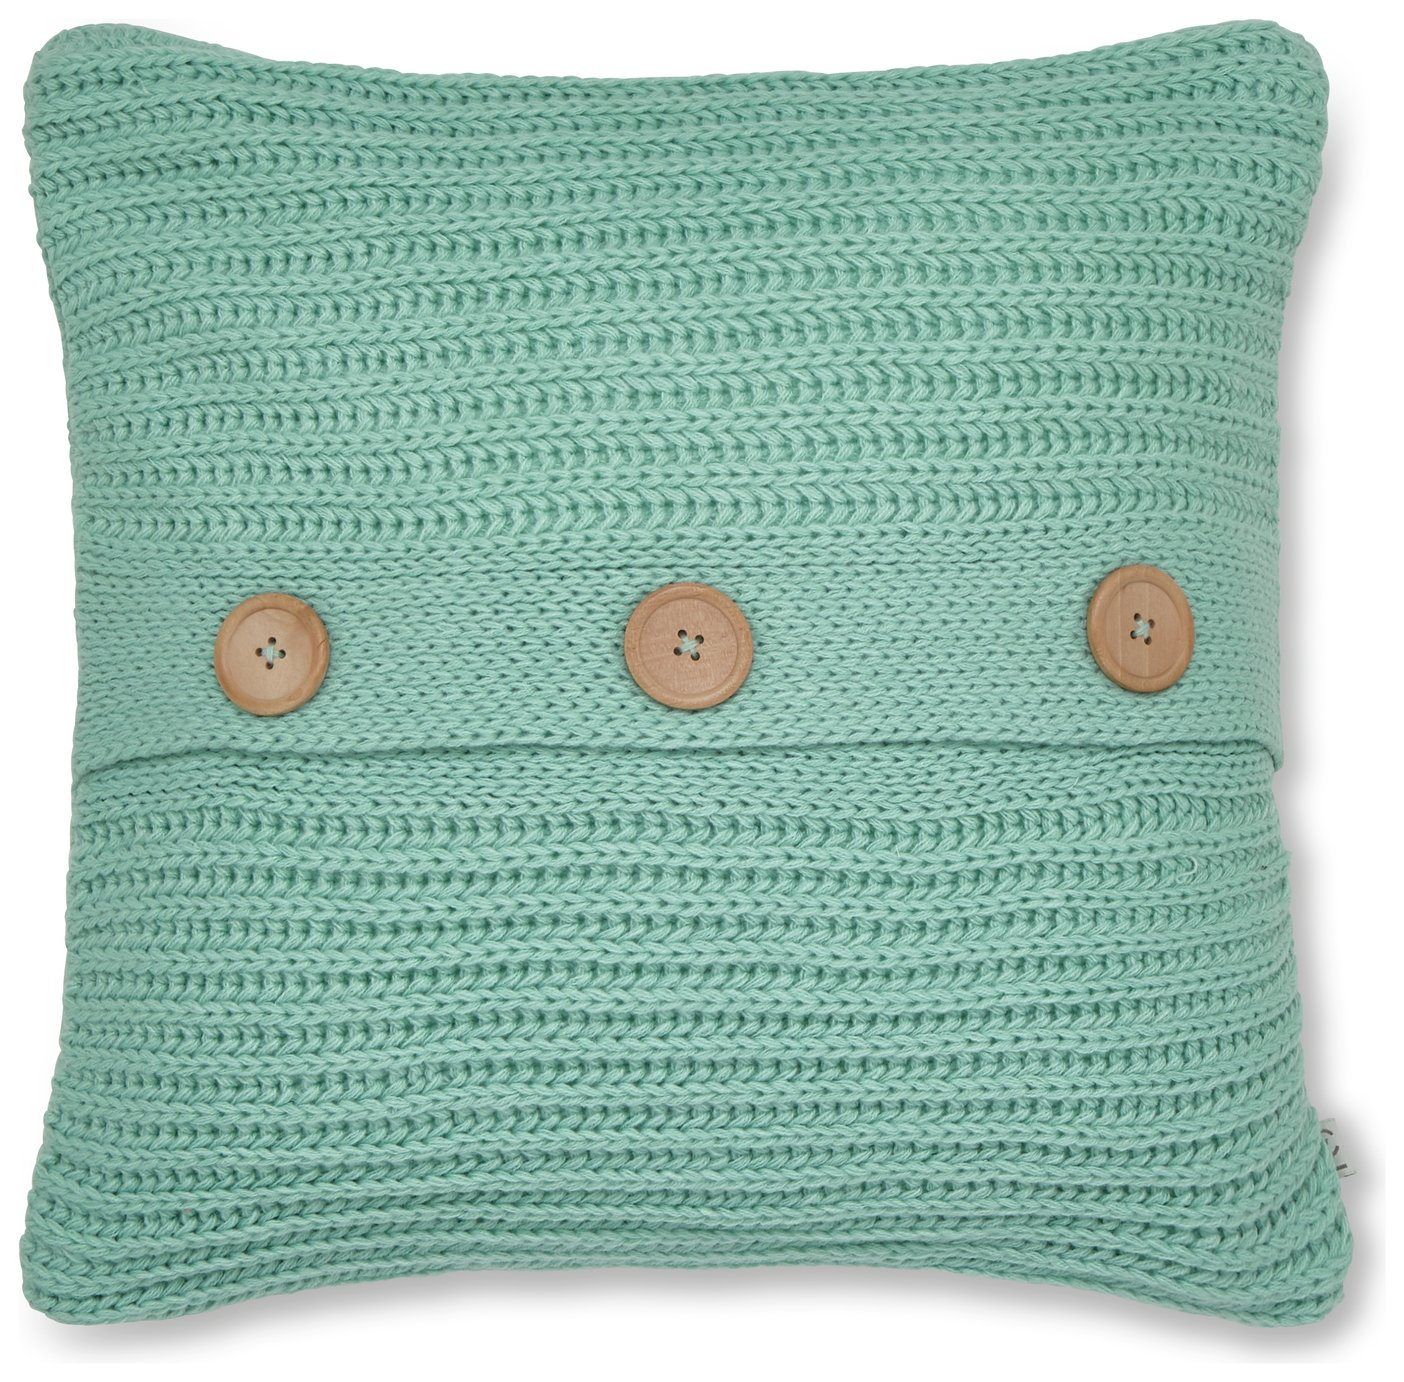 Image of Catherine Lansfield Chunky Knit Cushion - Duck Egg